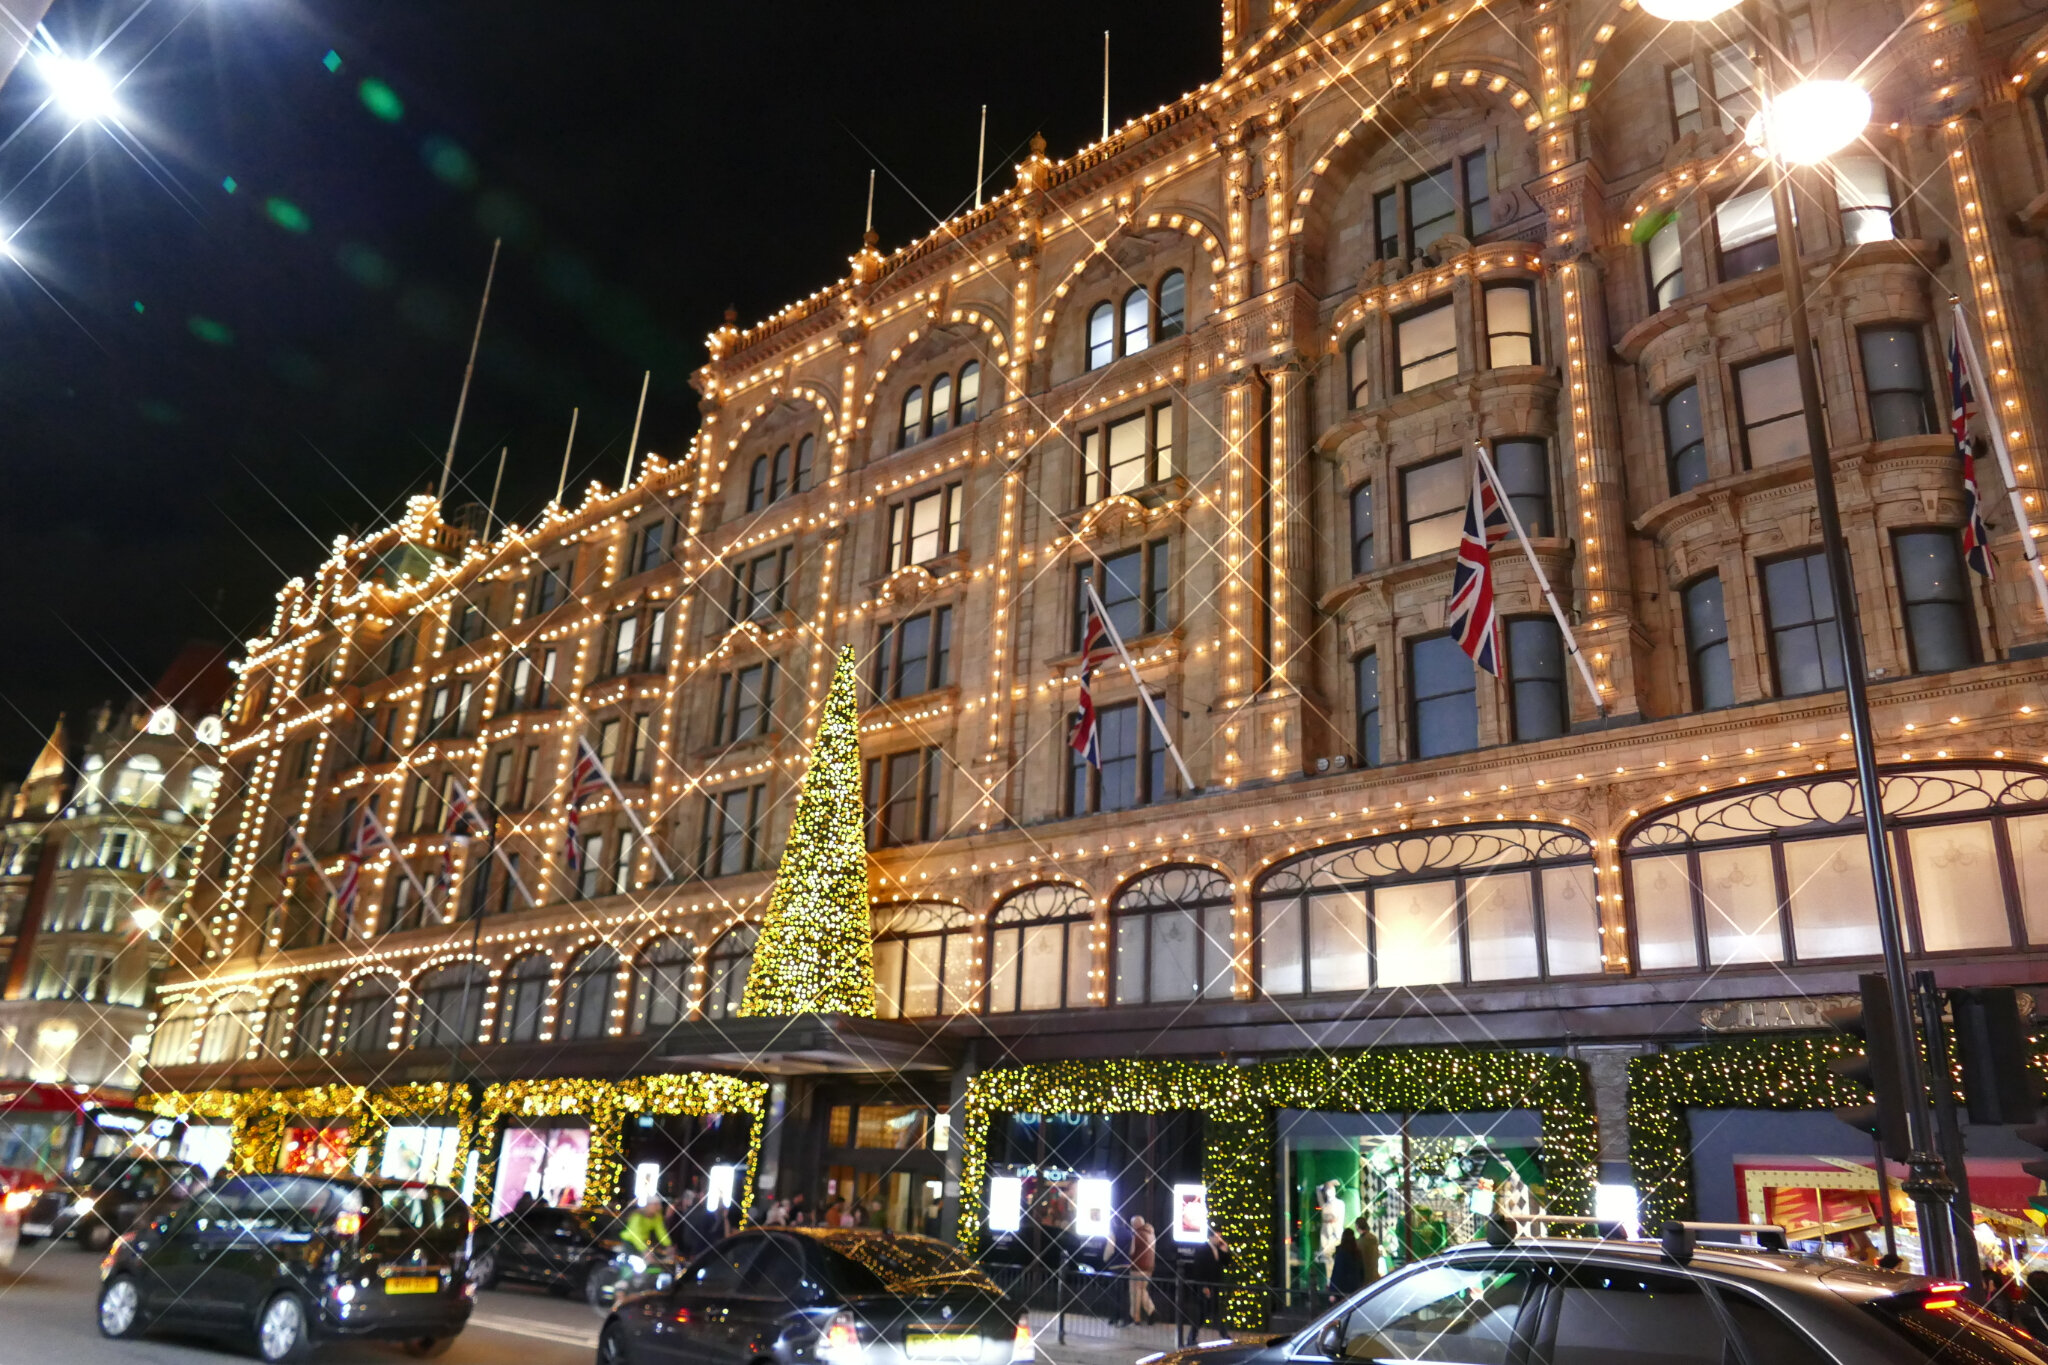 30 novembre 2018 - Excursion chez Harrods